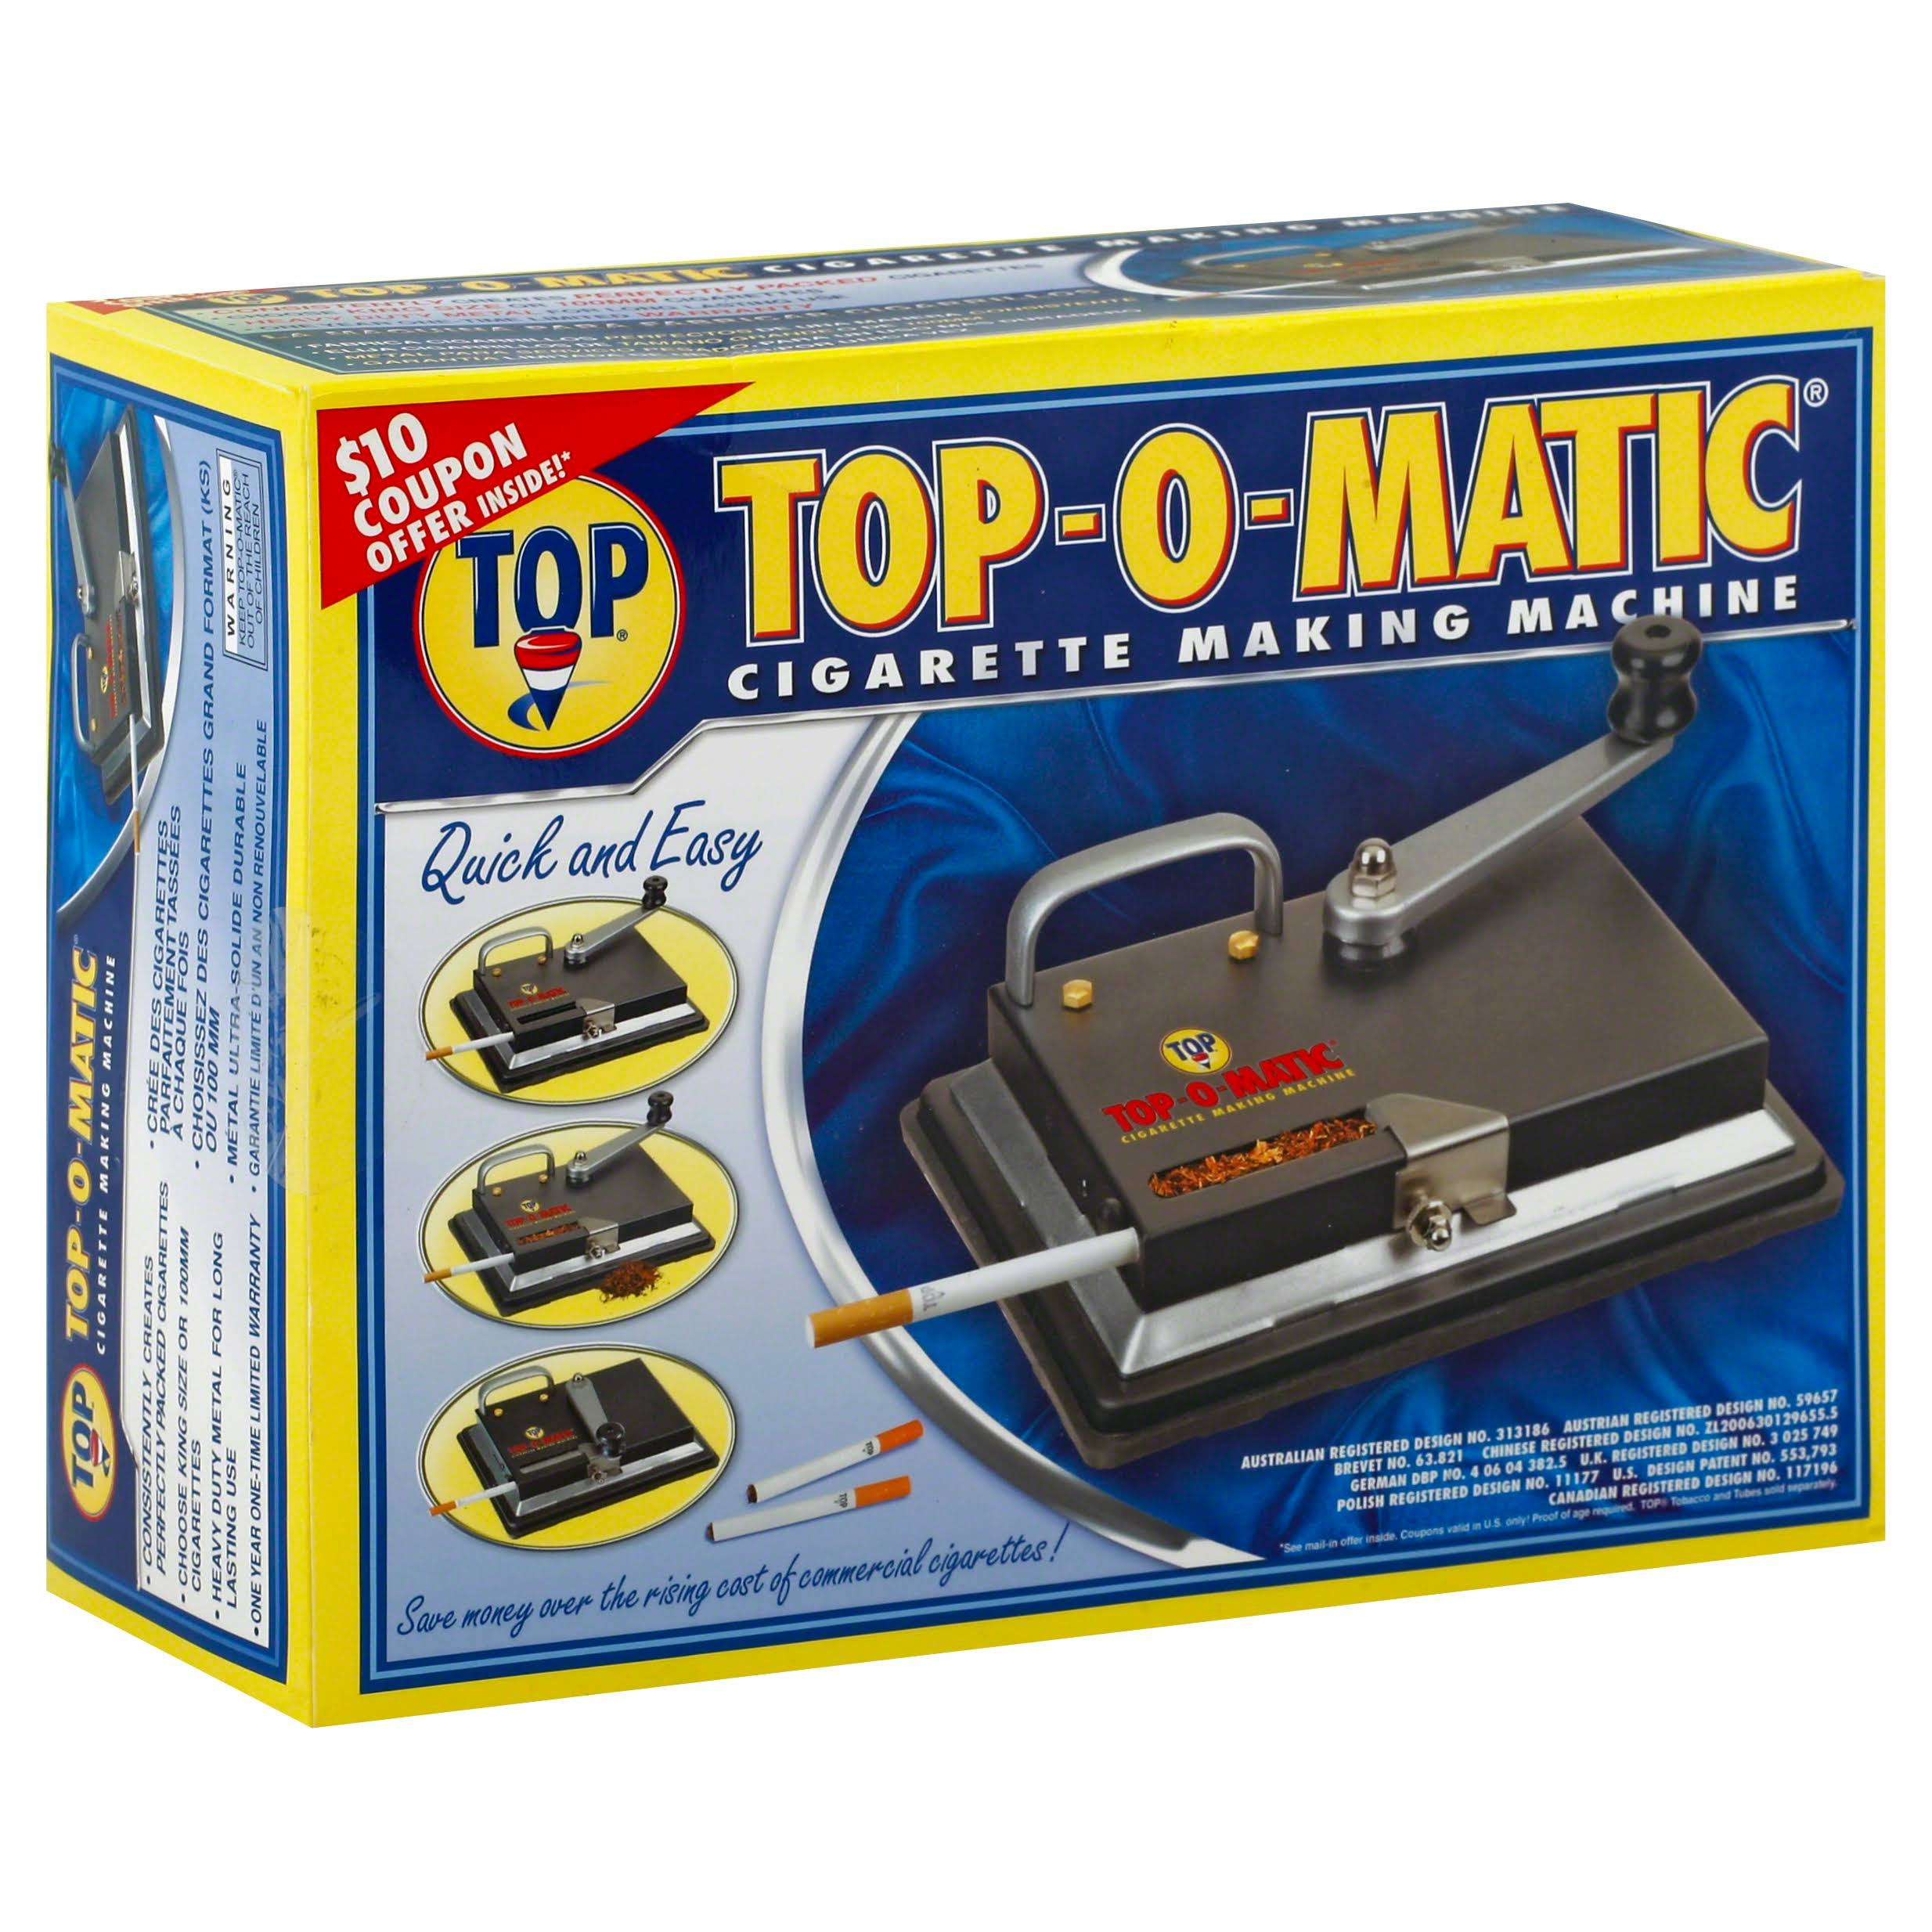 Top Cigarette Making Machine, Top-O-Matic